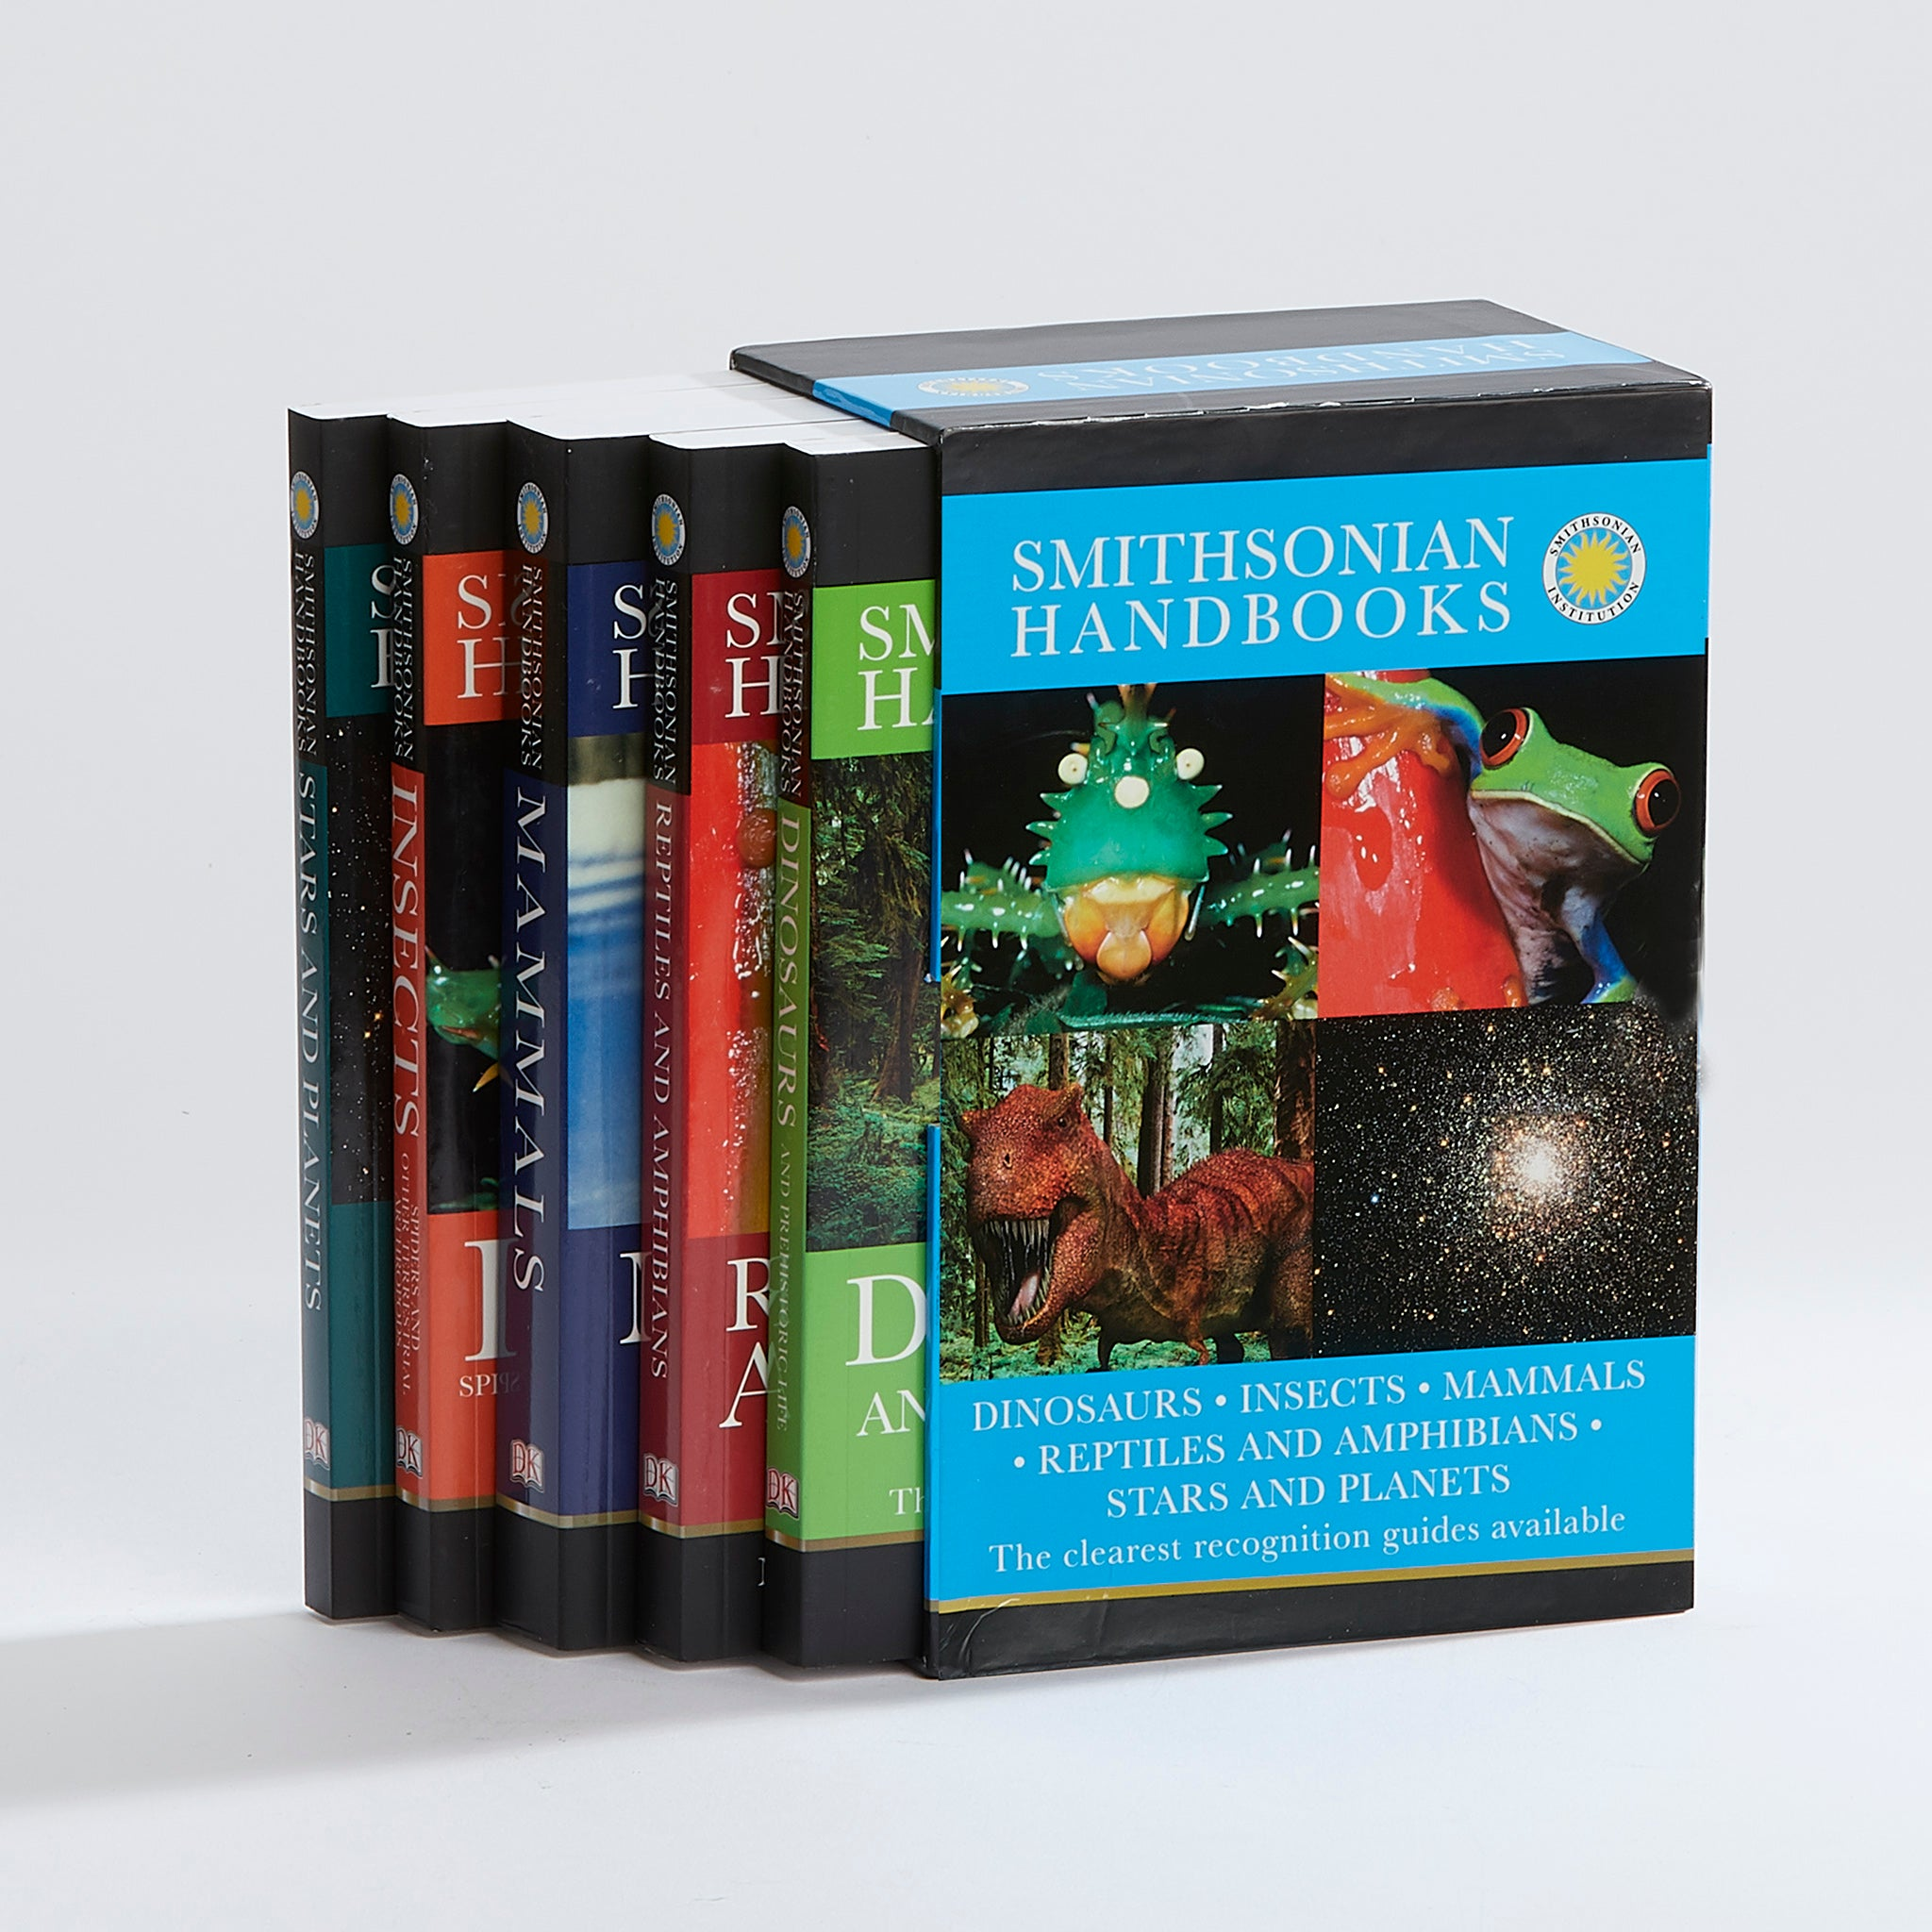 Smithsonian Handbook set